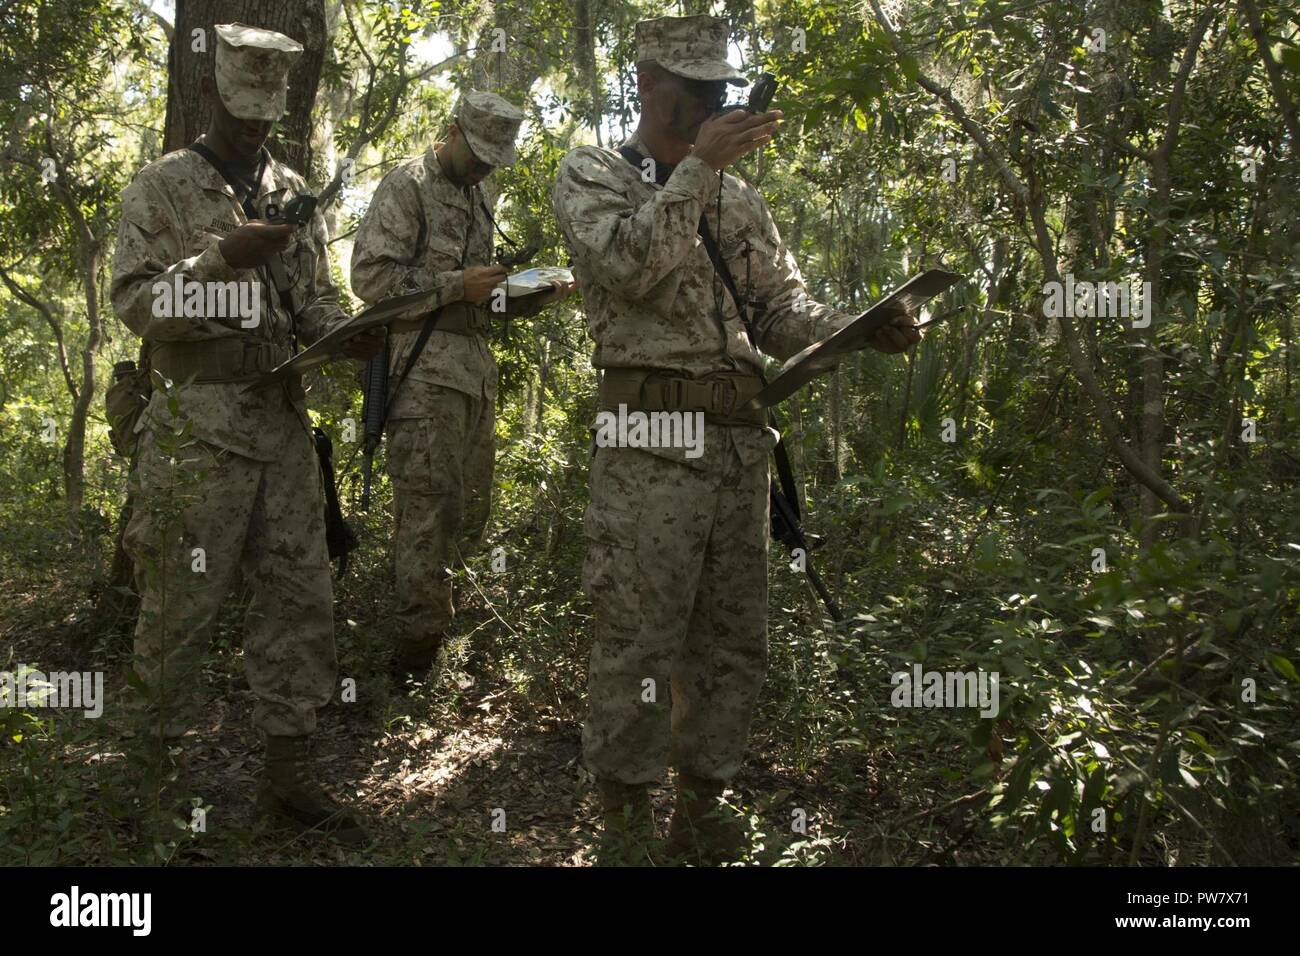 U.S. Marine Corps Recruits with Delta Company, 1st Battalion, Recruit Training Regiment, use compass techniques to reach their next plot point at Elliot's Beach on Marine Corps Recruit Depot, Parris Island, S.C., Sept. 25, 2017.  The Land Navigation Course teaches recruits how to properly navigate unfamiliar terrain. Stock Photo